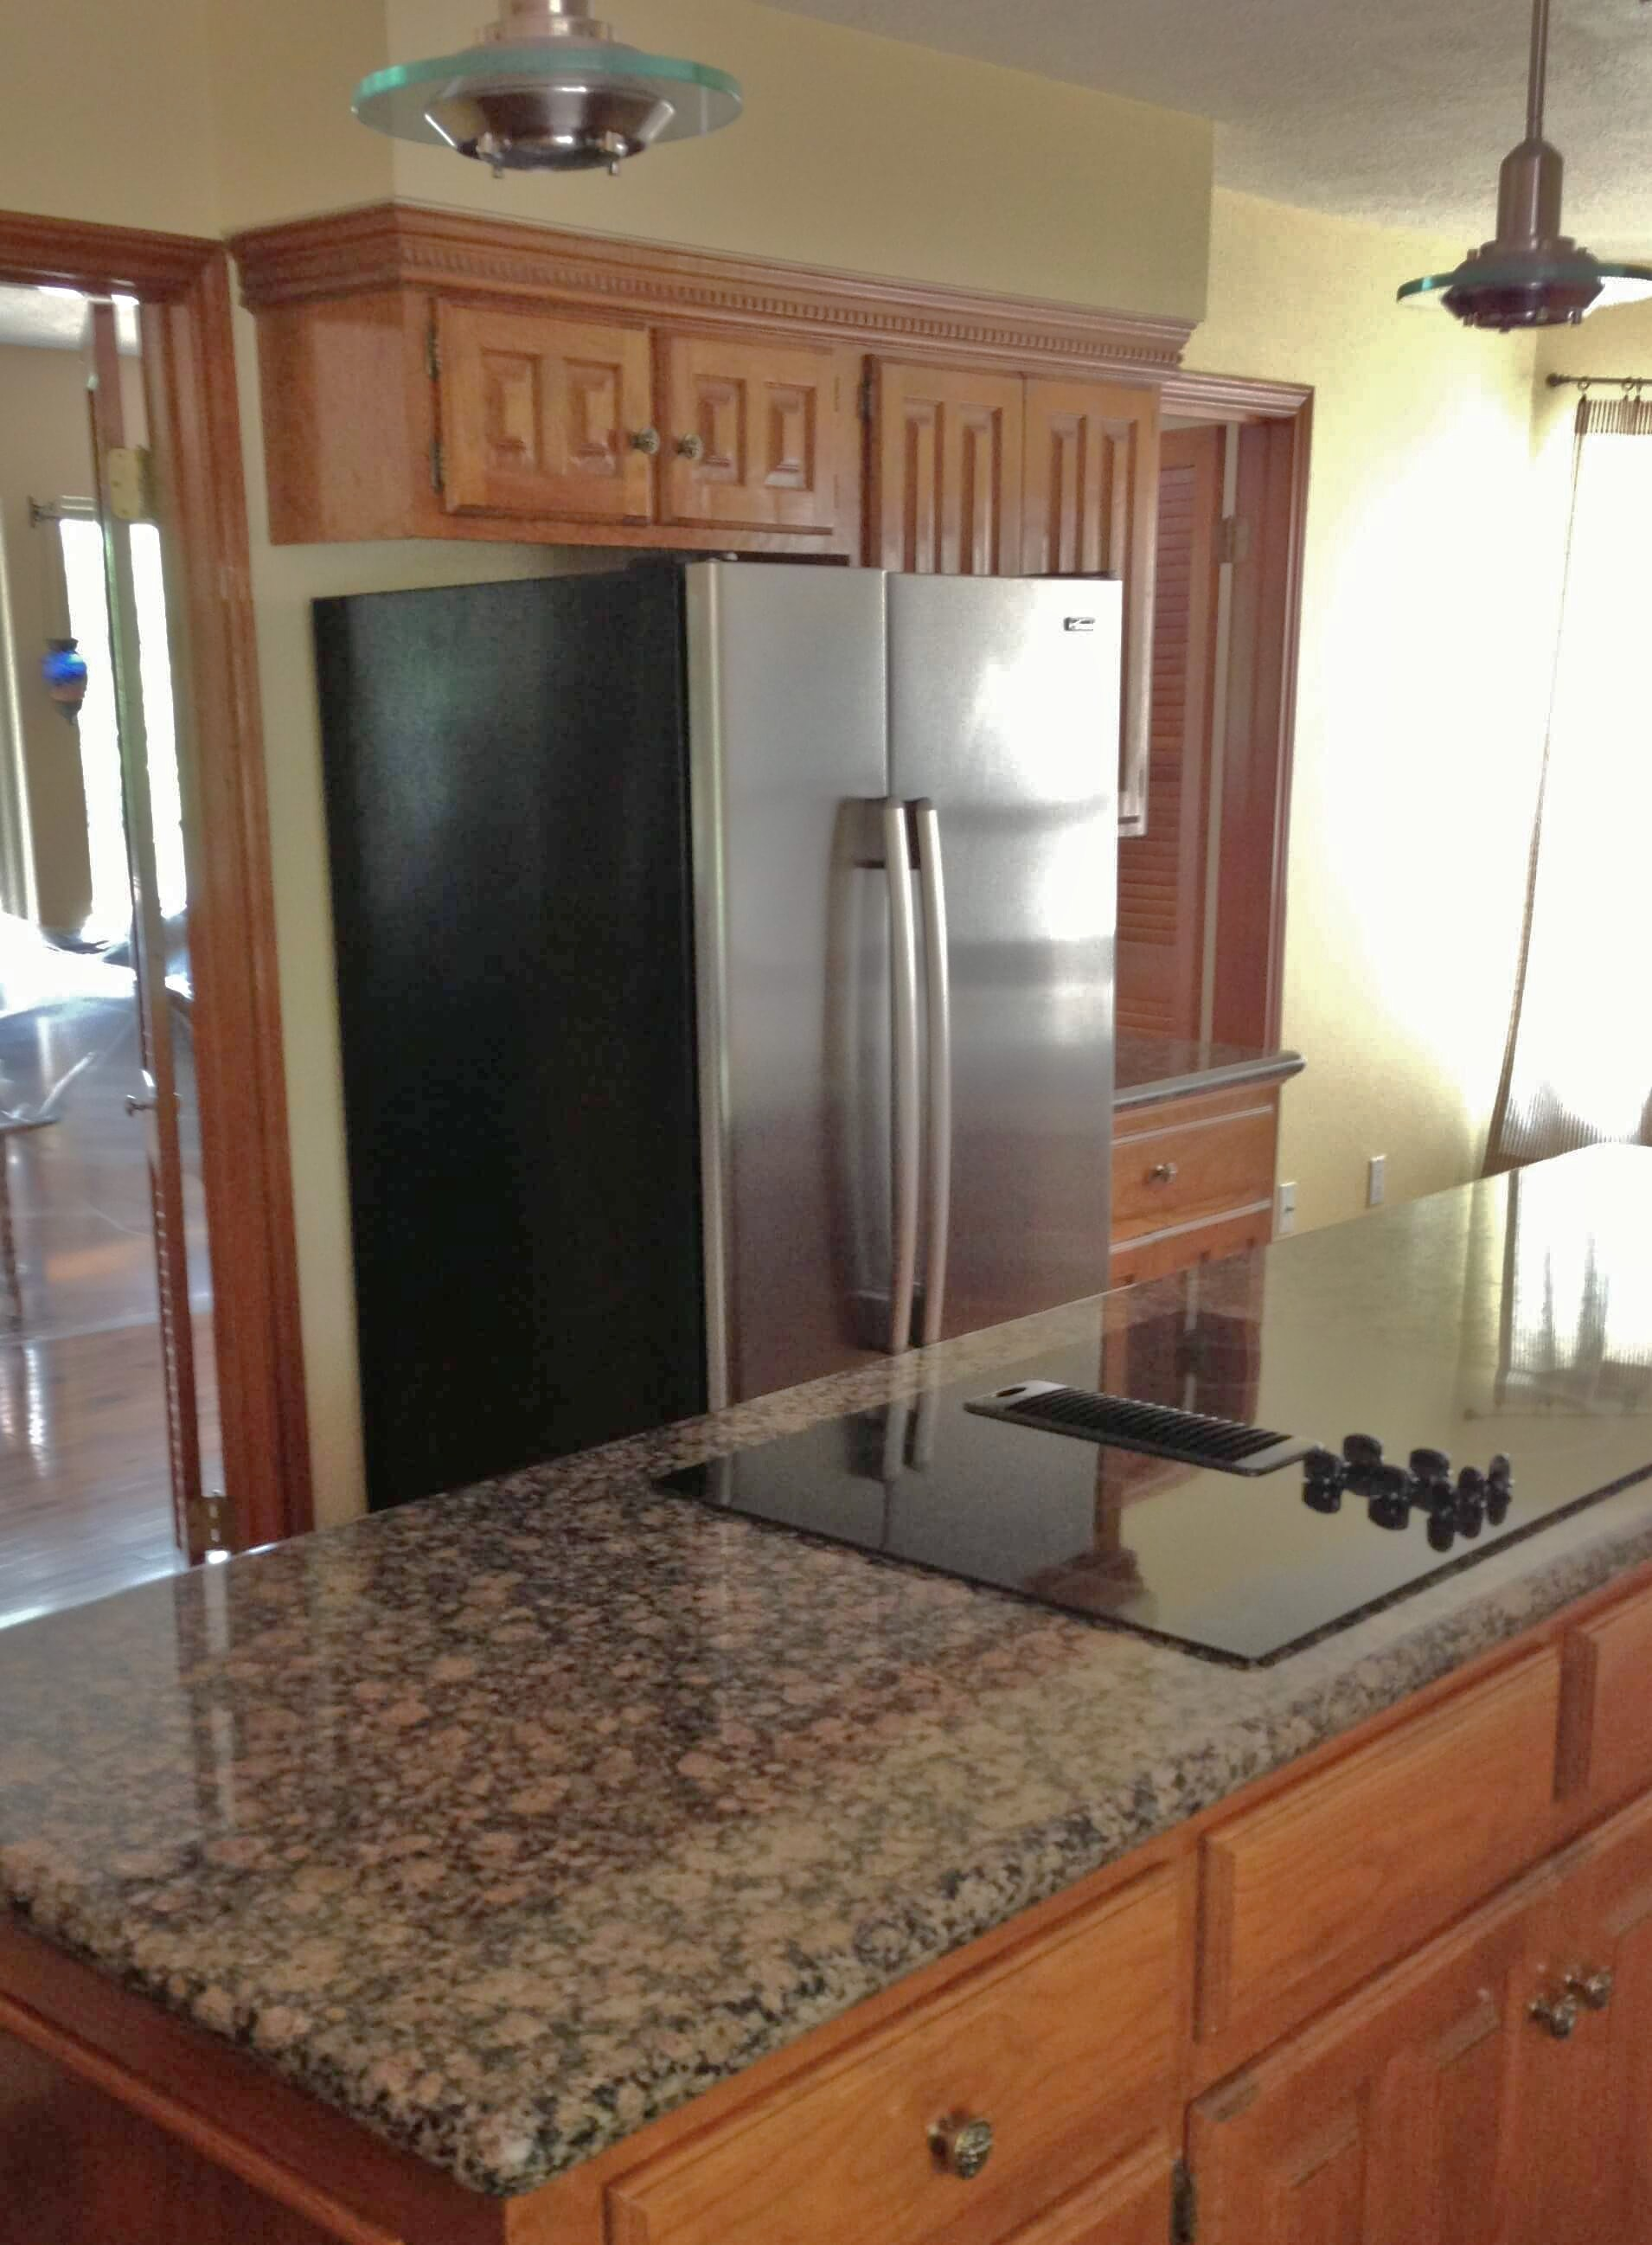 How To Tweak Your Cabinetry For Better Organization 7 Tips Designed